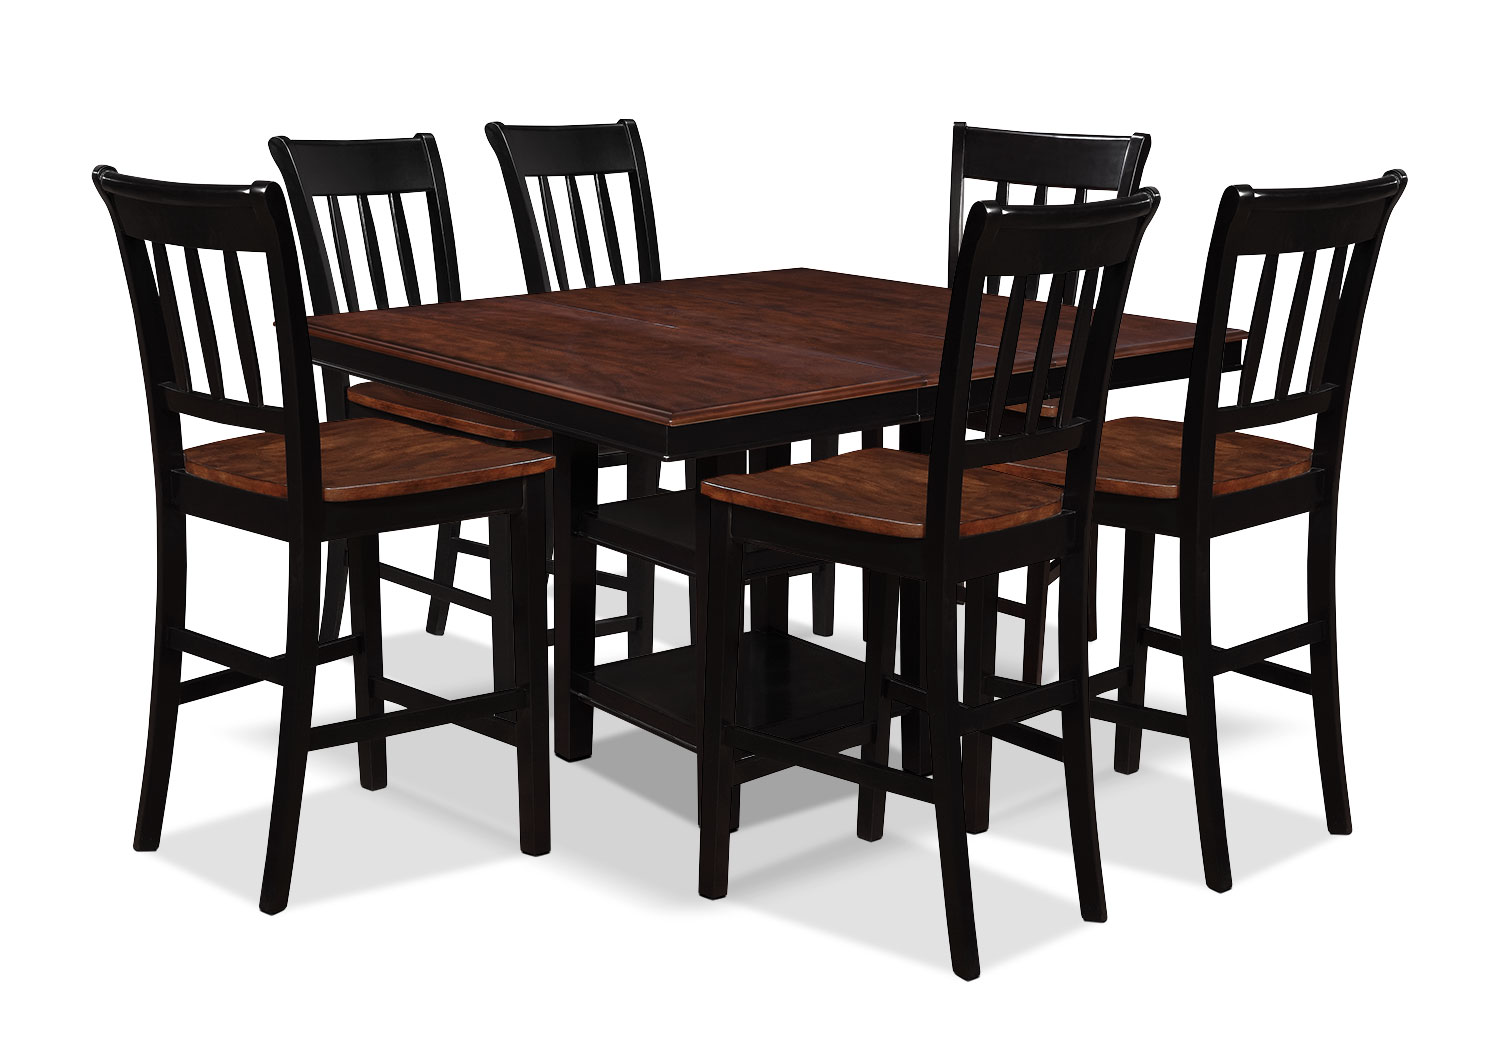 Nyla 7-Piece Counter-Height Dining Package – Black and Cherry